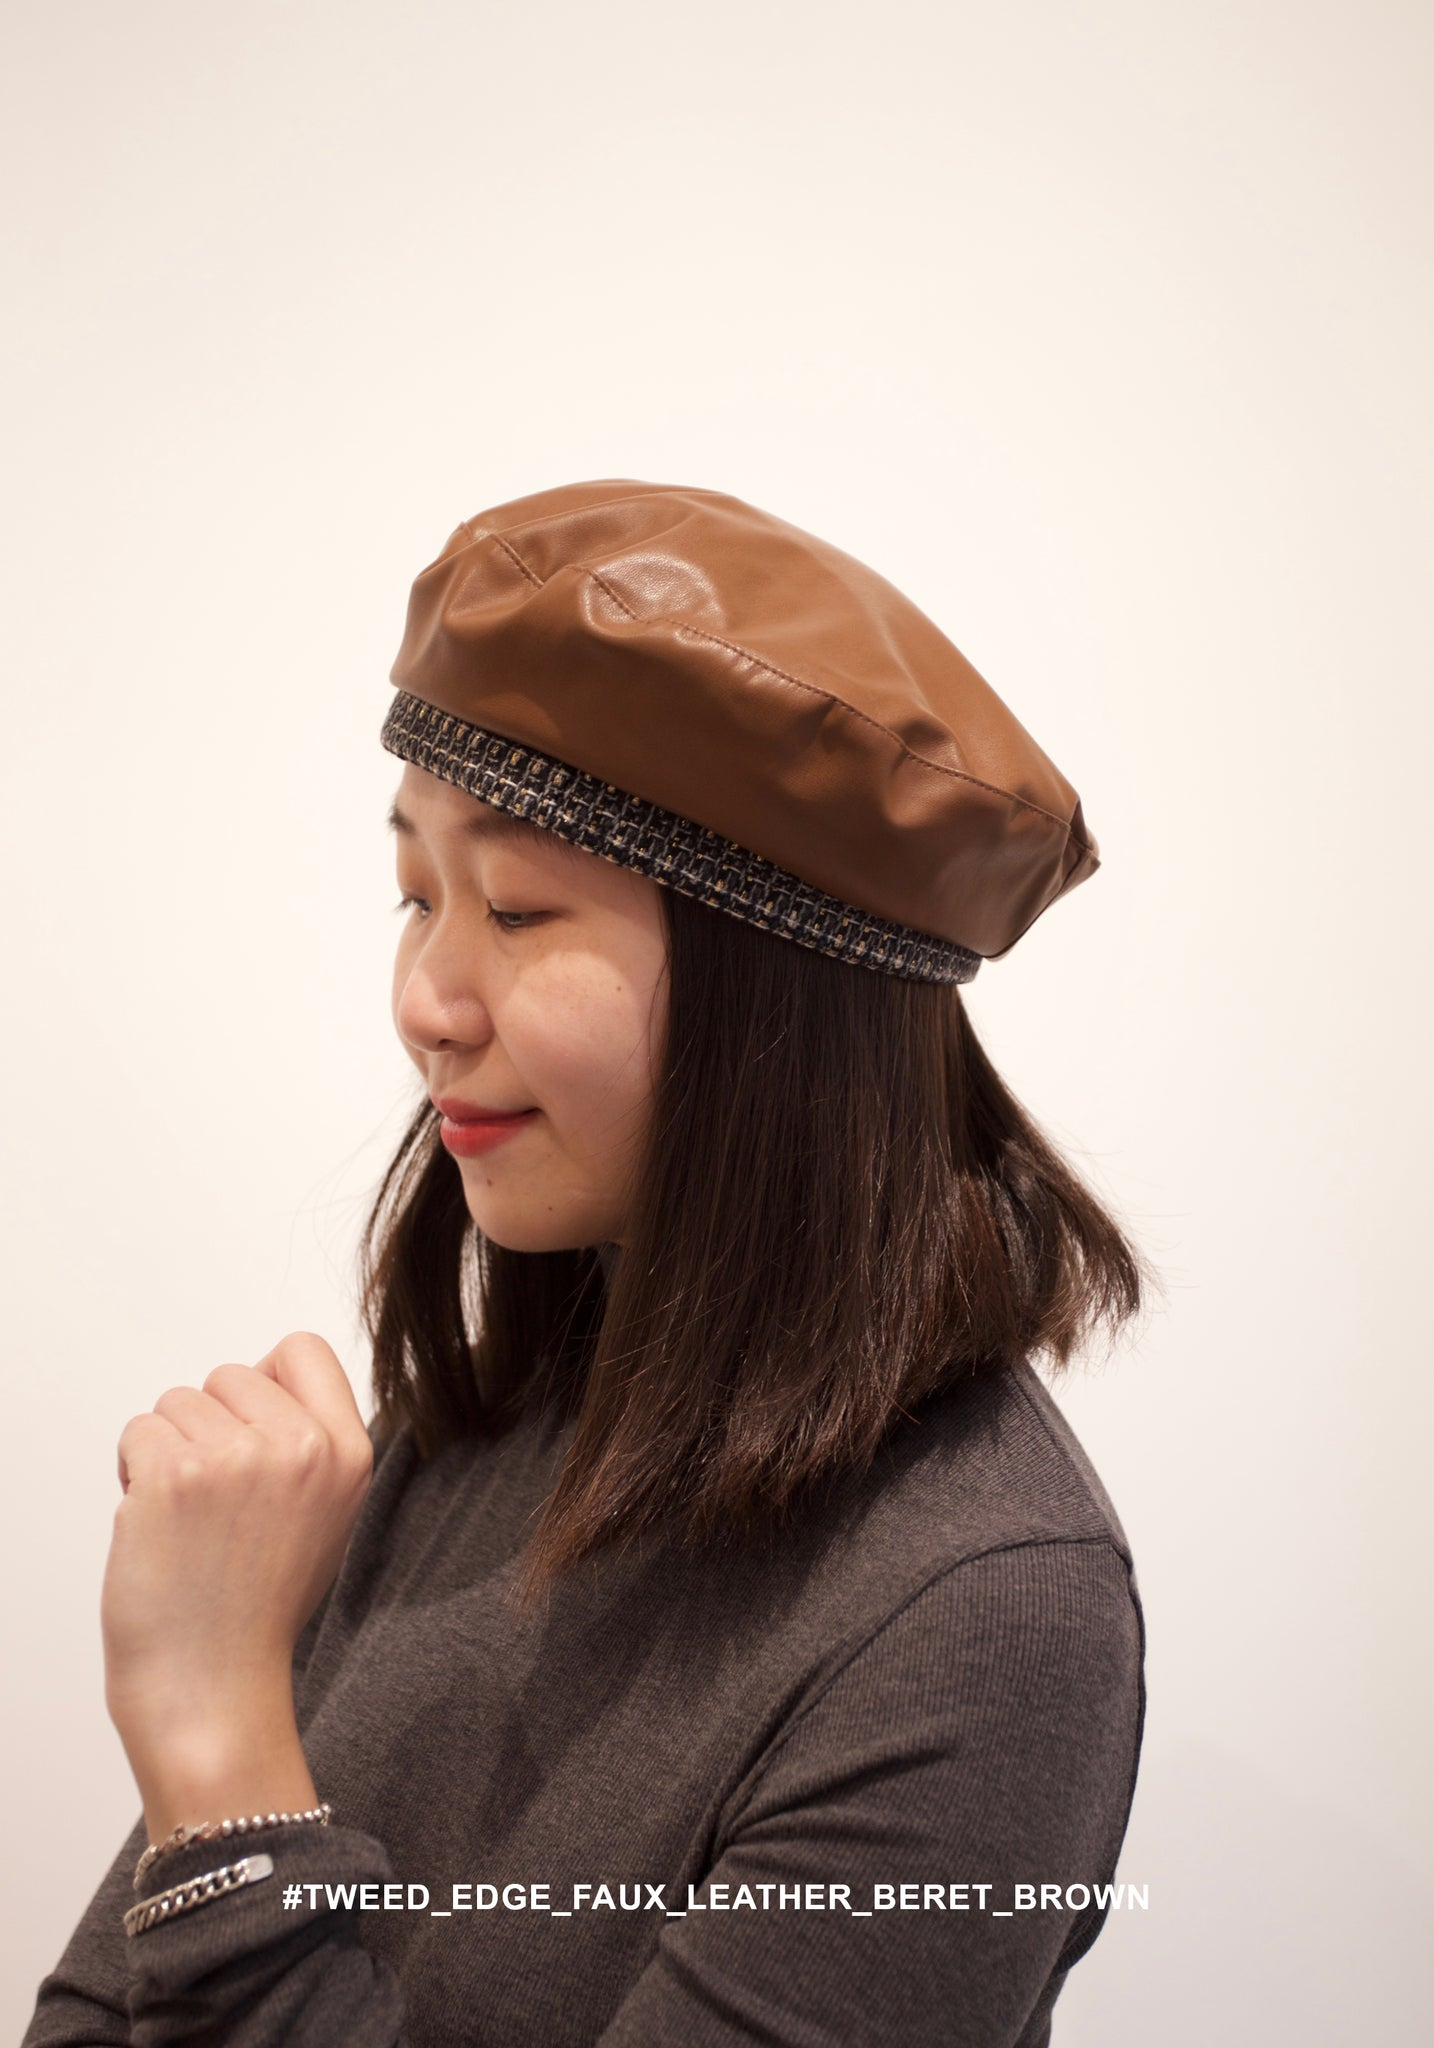 Tweed Edge Faux Leather Beret Brown - whoami